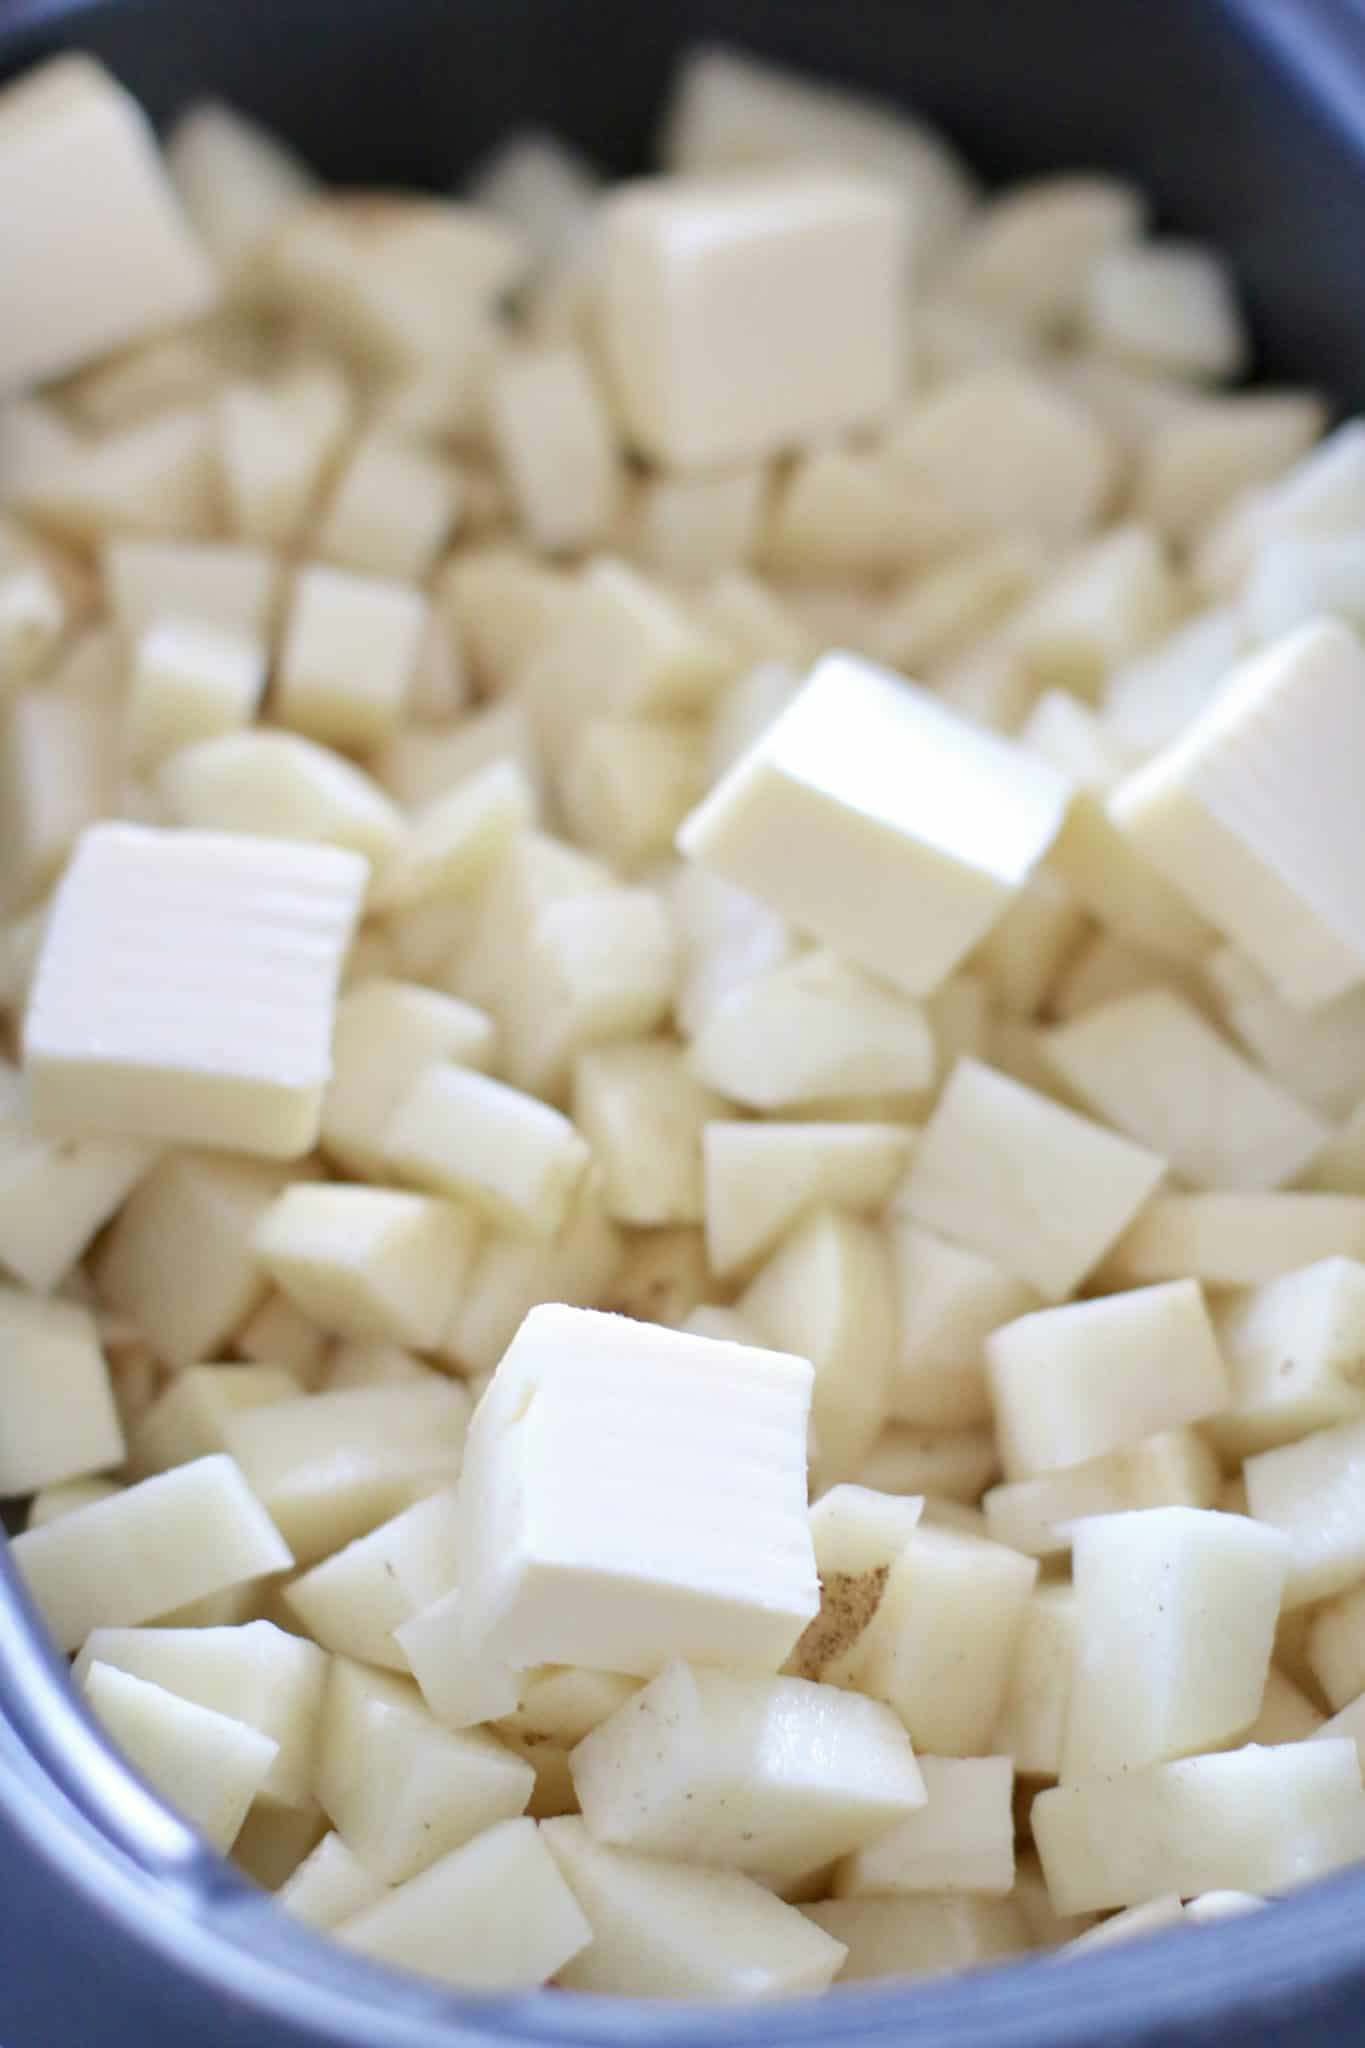 big slices of butter shown on diced potatoes in a slow cooker.